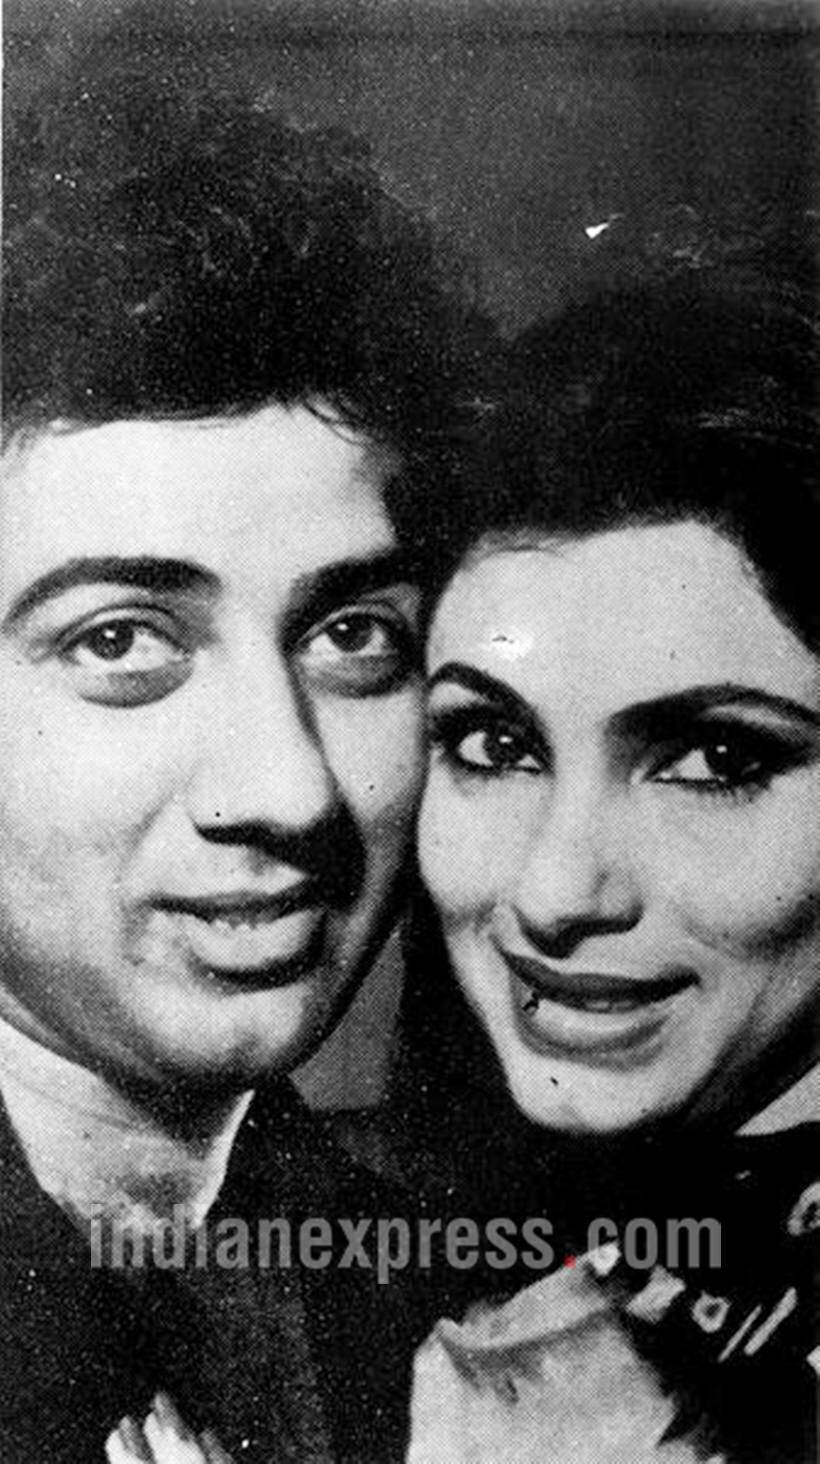 Sunny Deol and Dimple Kapadia's rare pictures